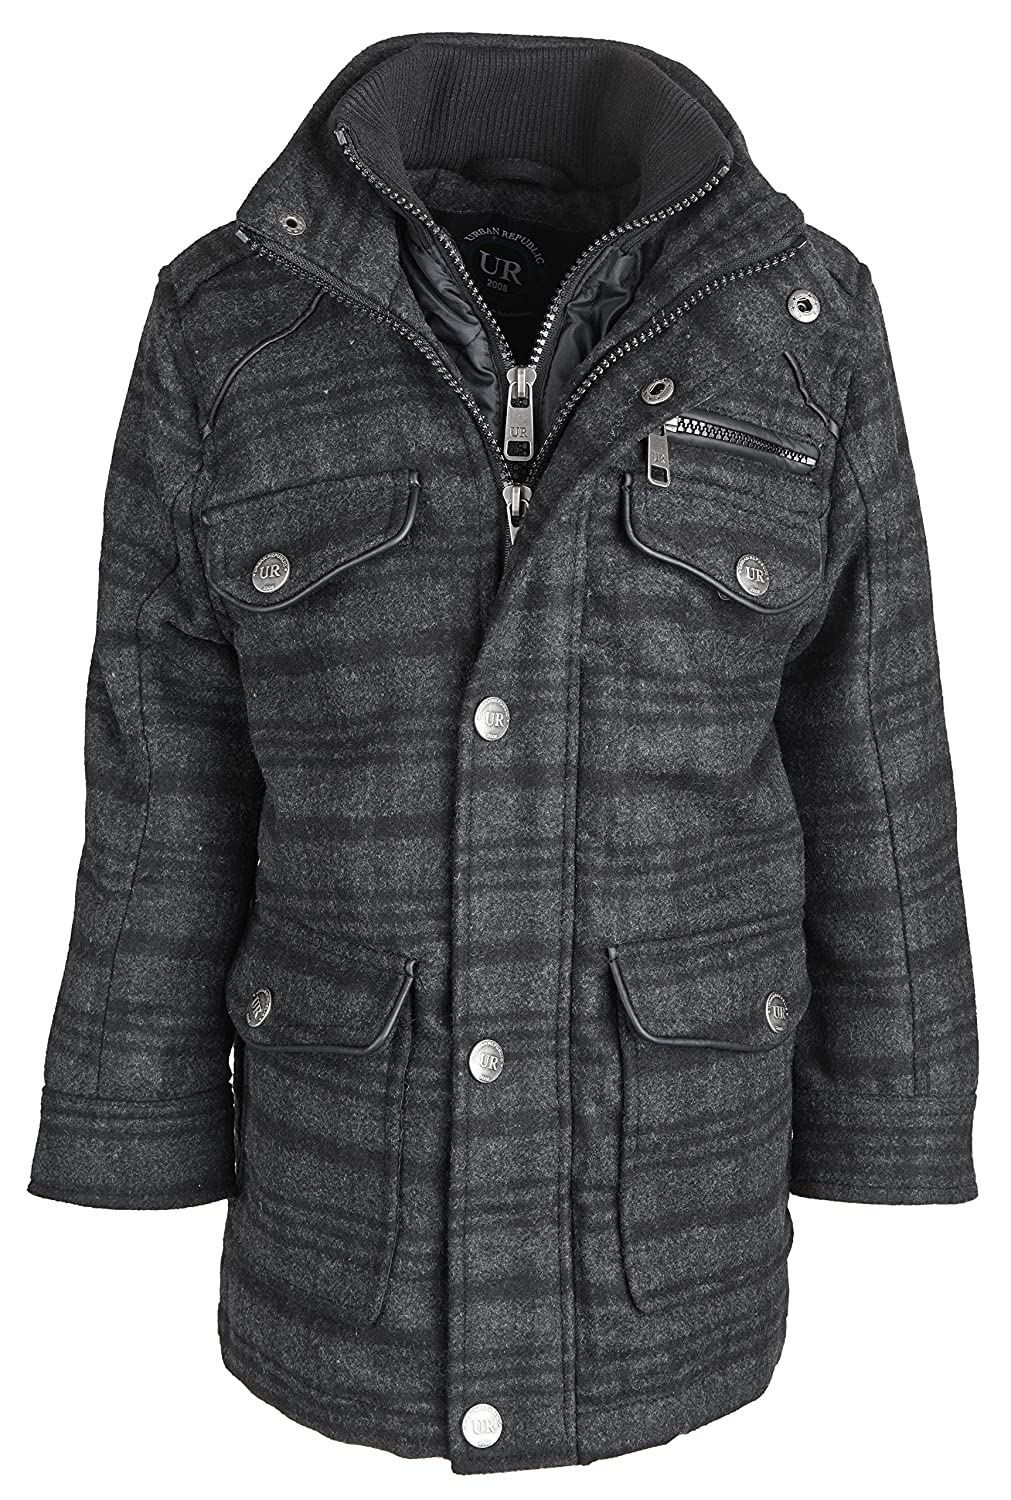 Urban Republic Little Boys Classic Wool Blend Padded Winter Jacket with Vestee